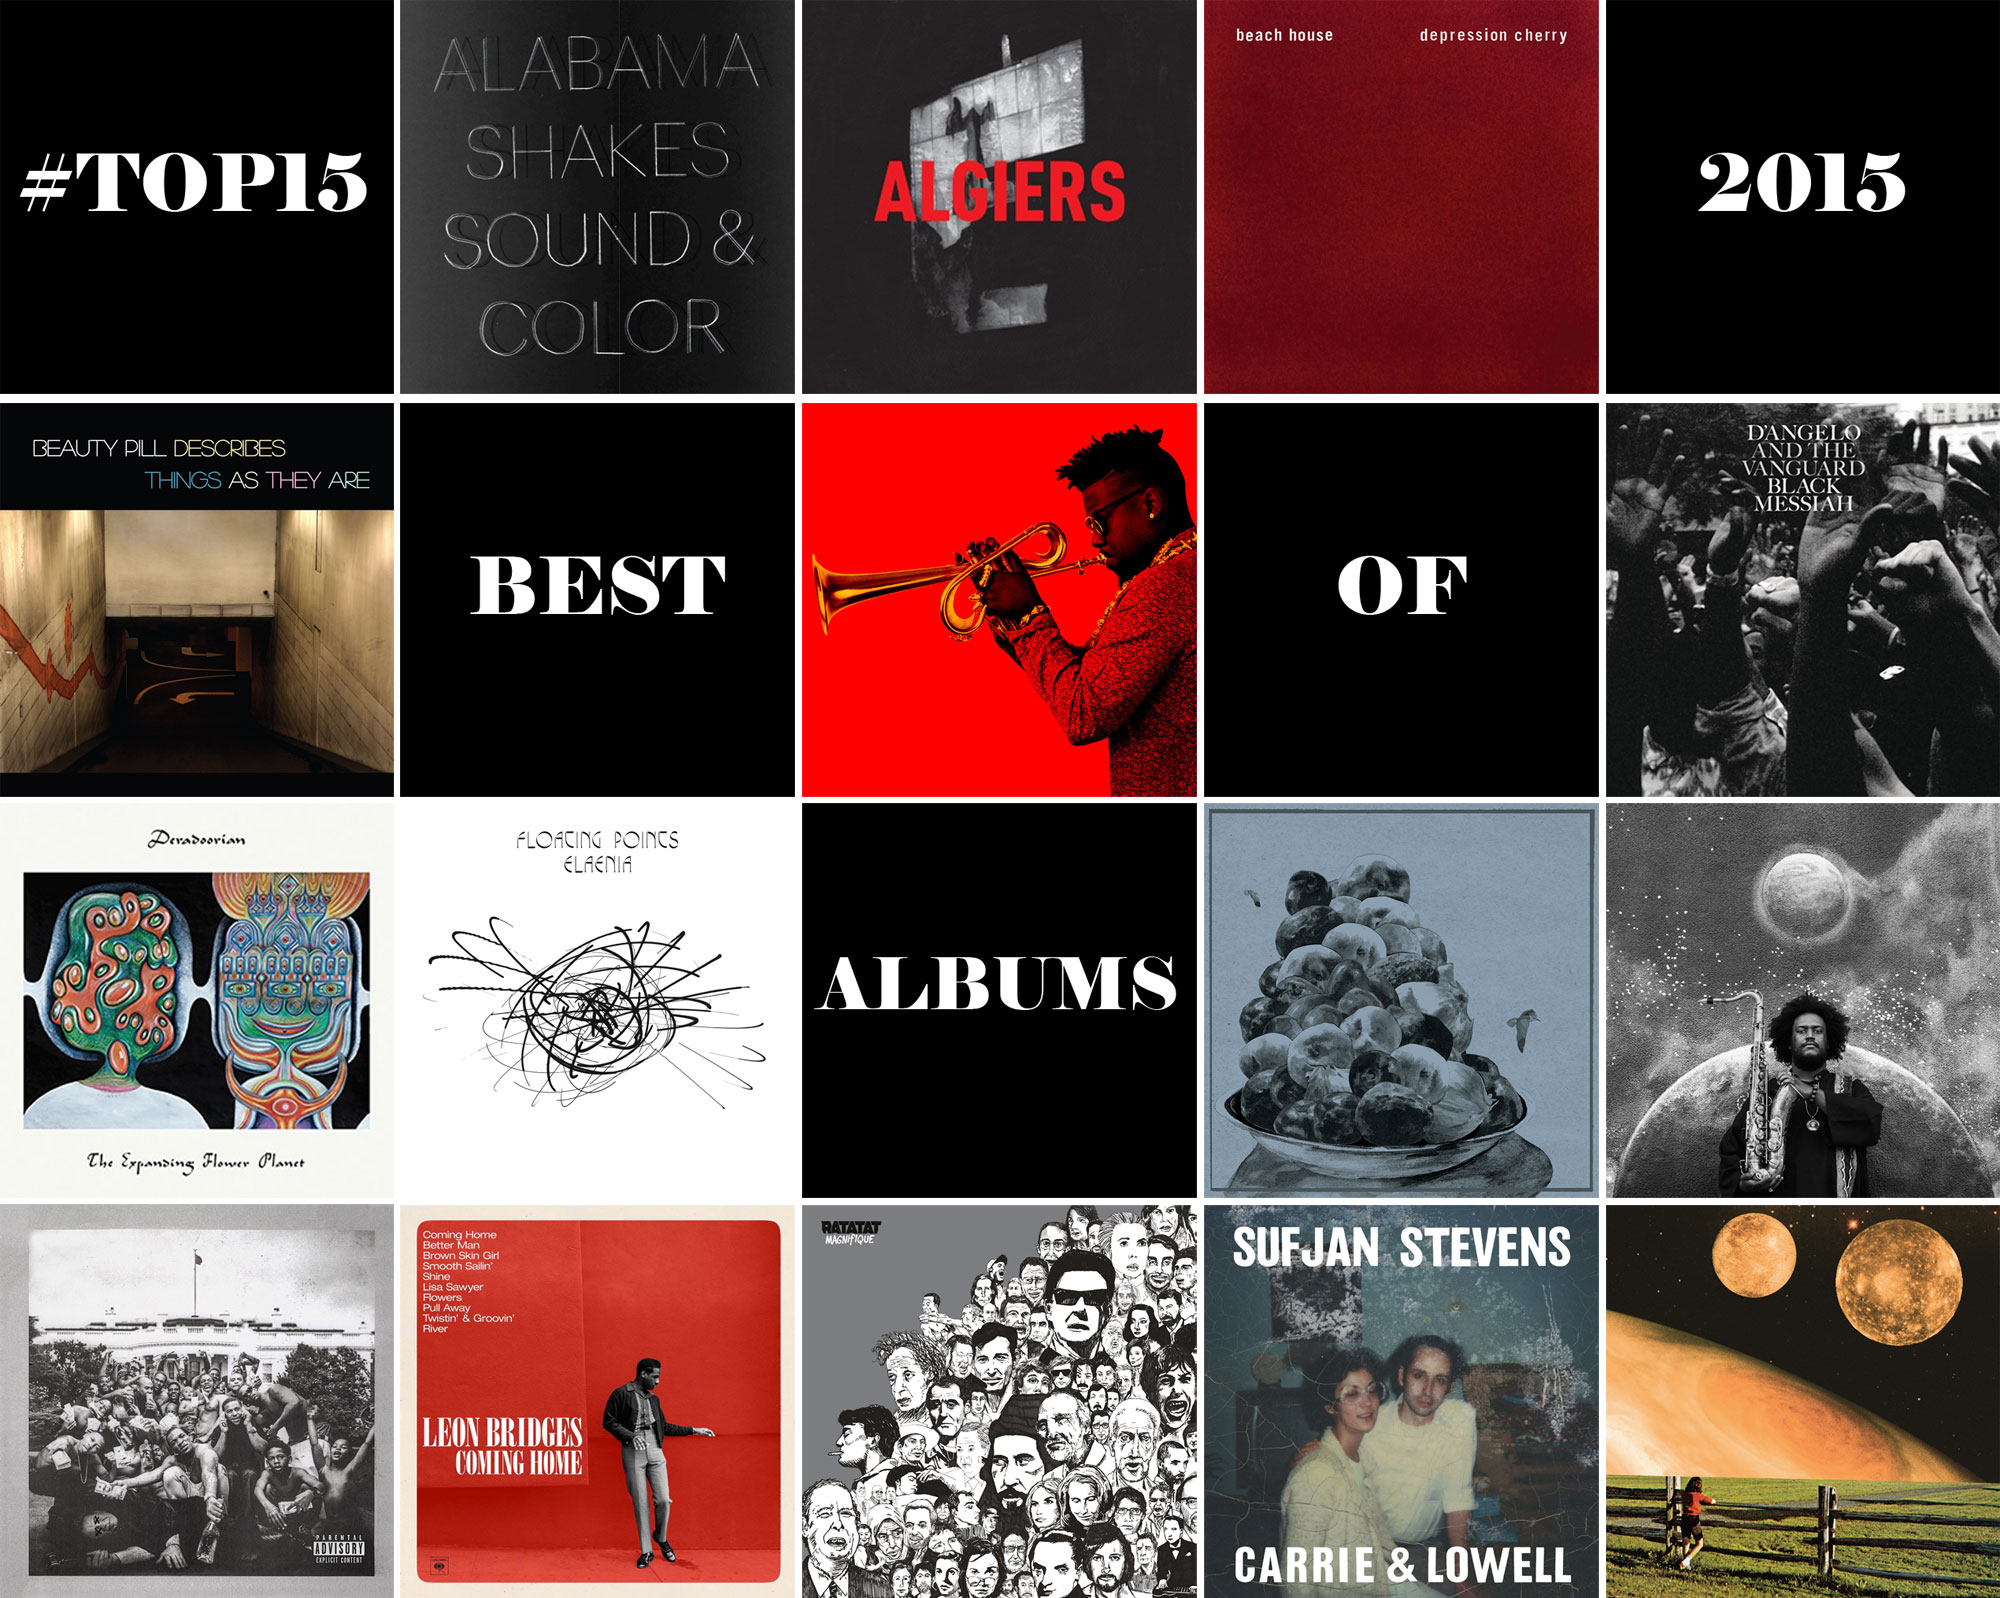 #TOP15 albums of 2015